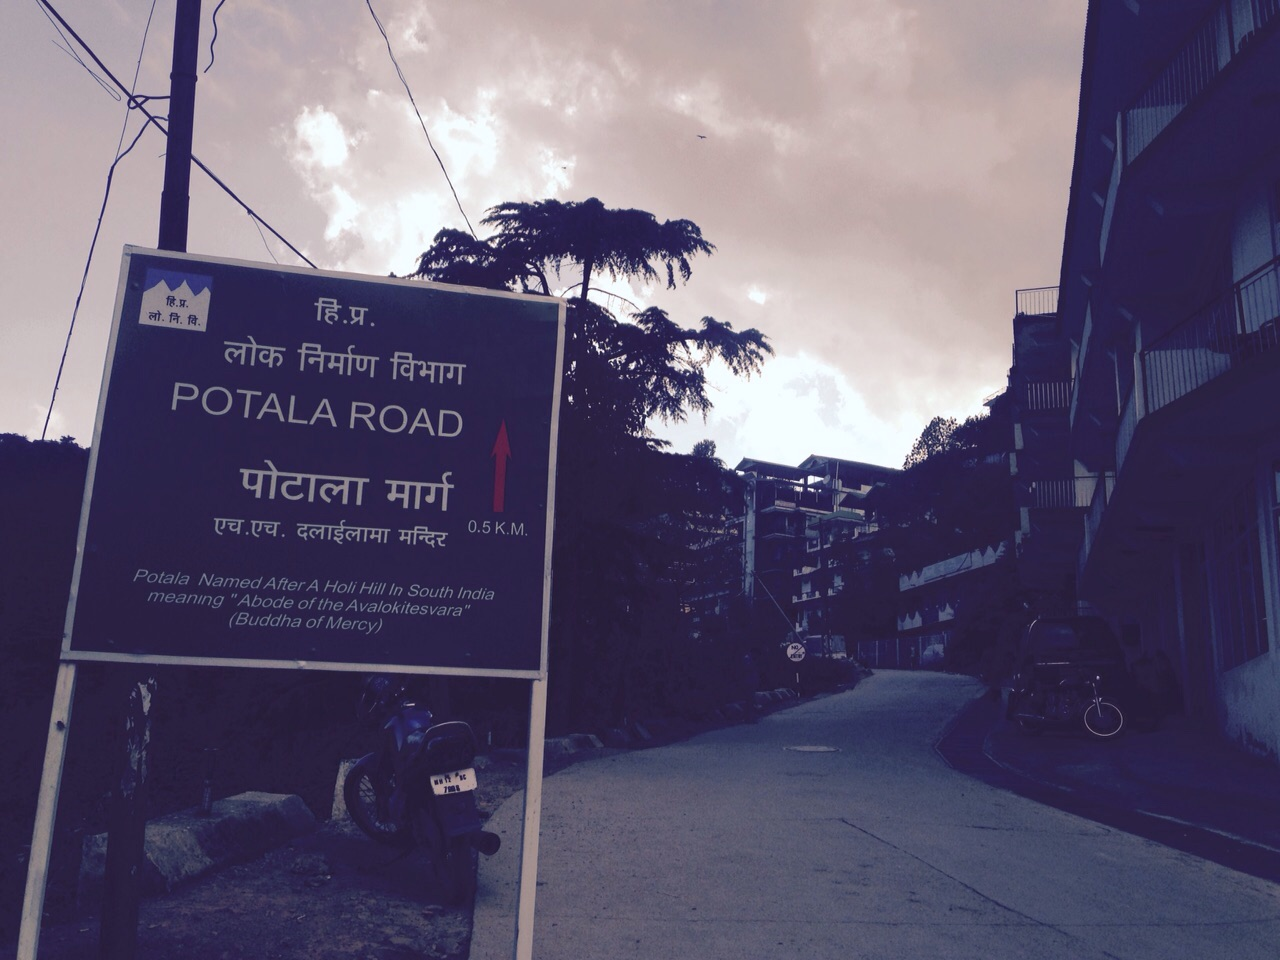 Chief Minister Mr Virbhadra Singh of Himachal Pradesh on Jun 22 renamed the road from downtown Kotwali Bazar of Dharamsala Municipality running up via the location of the exile Tibetan administration towards the residence of the Dalai Lama at Mcleod Ganj town as the Potala Road. (Photo courtesy: phayul.com)